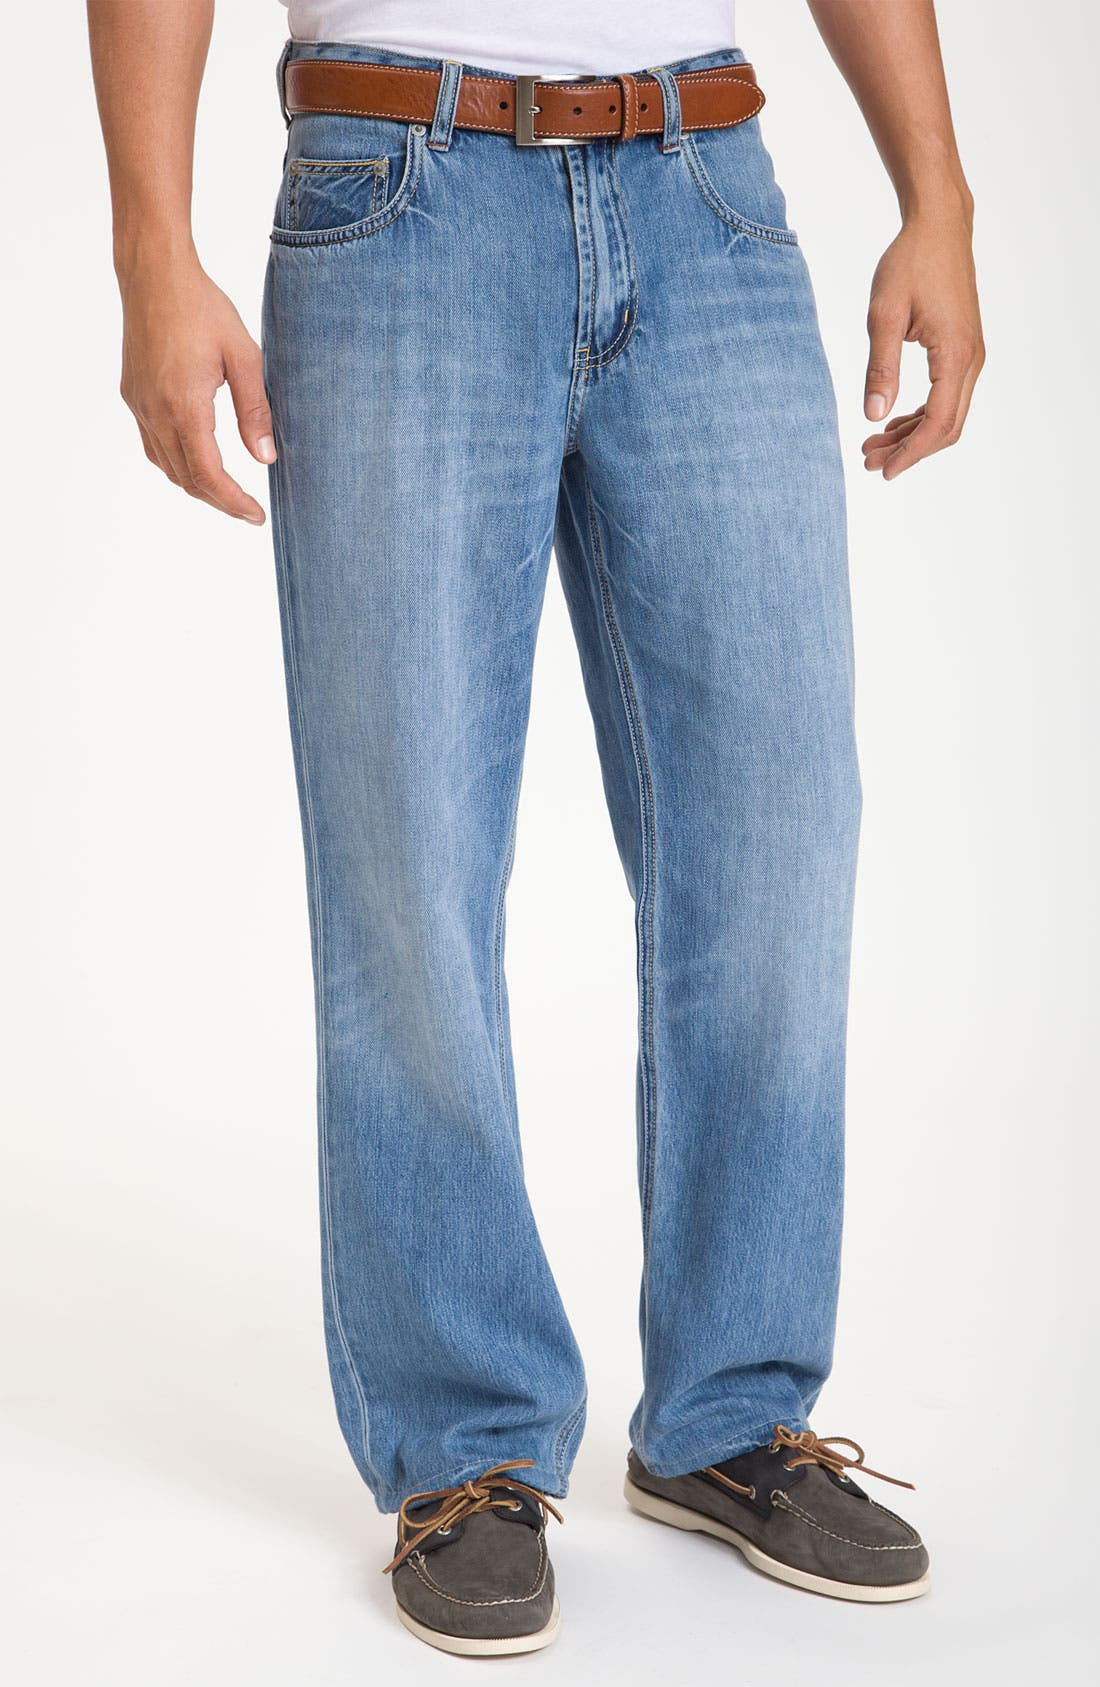 Alternate Image 1 Selected - Tommy Bahama Denim 'Island Ease' Straight Leg Jeans (Vintage Light)